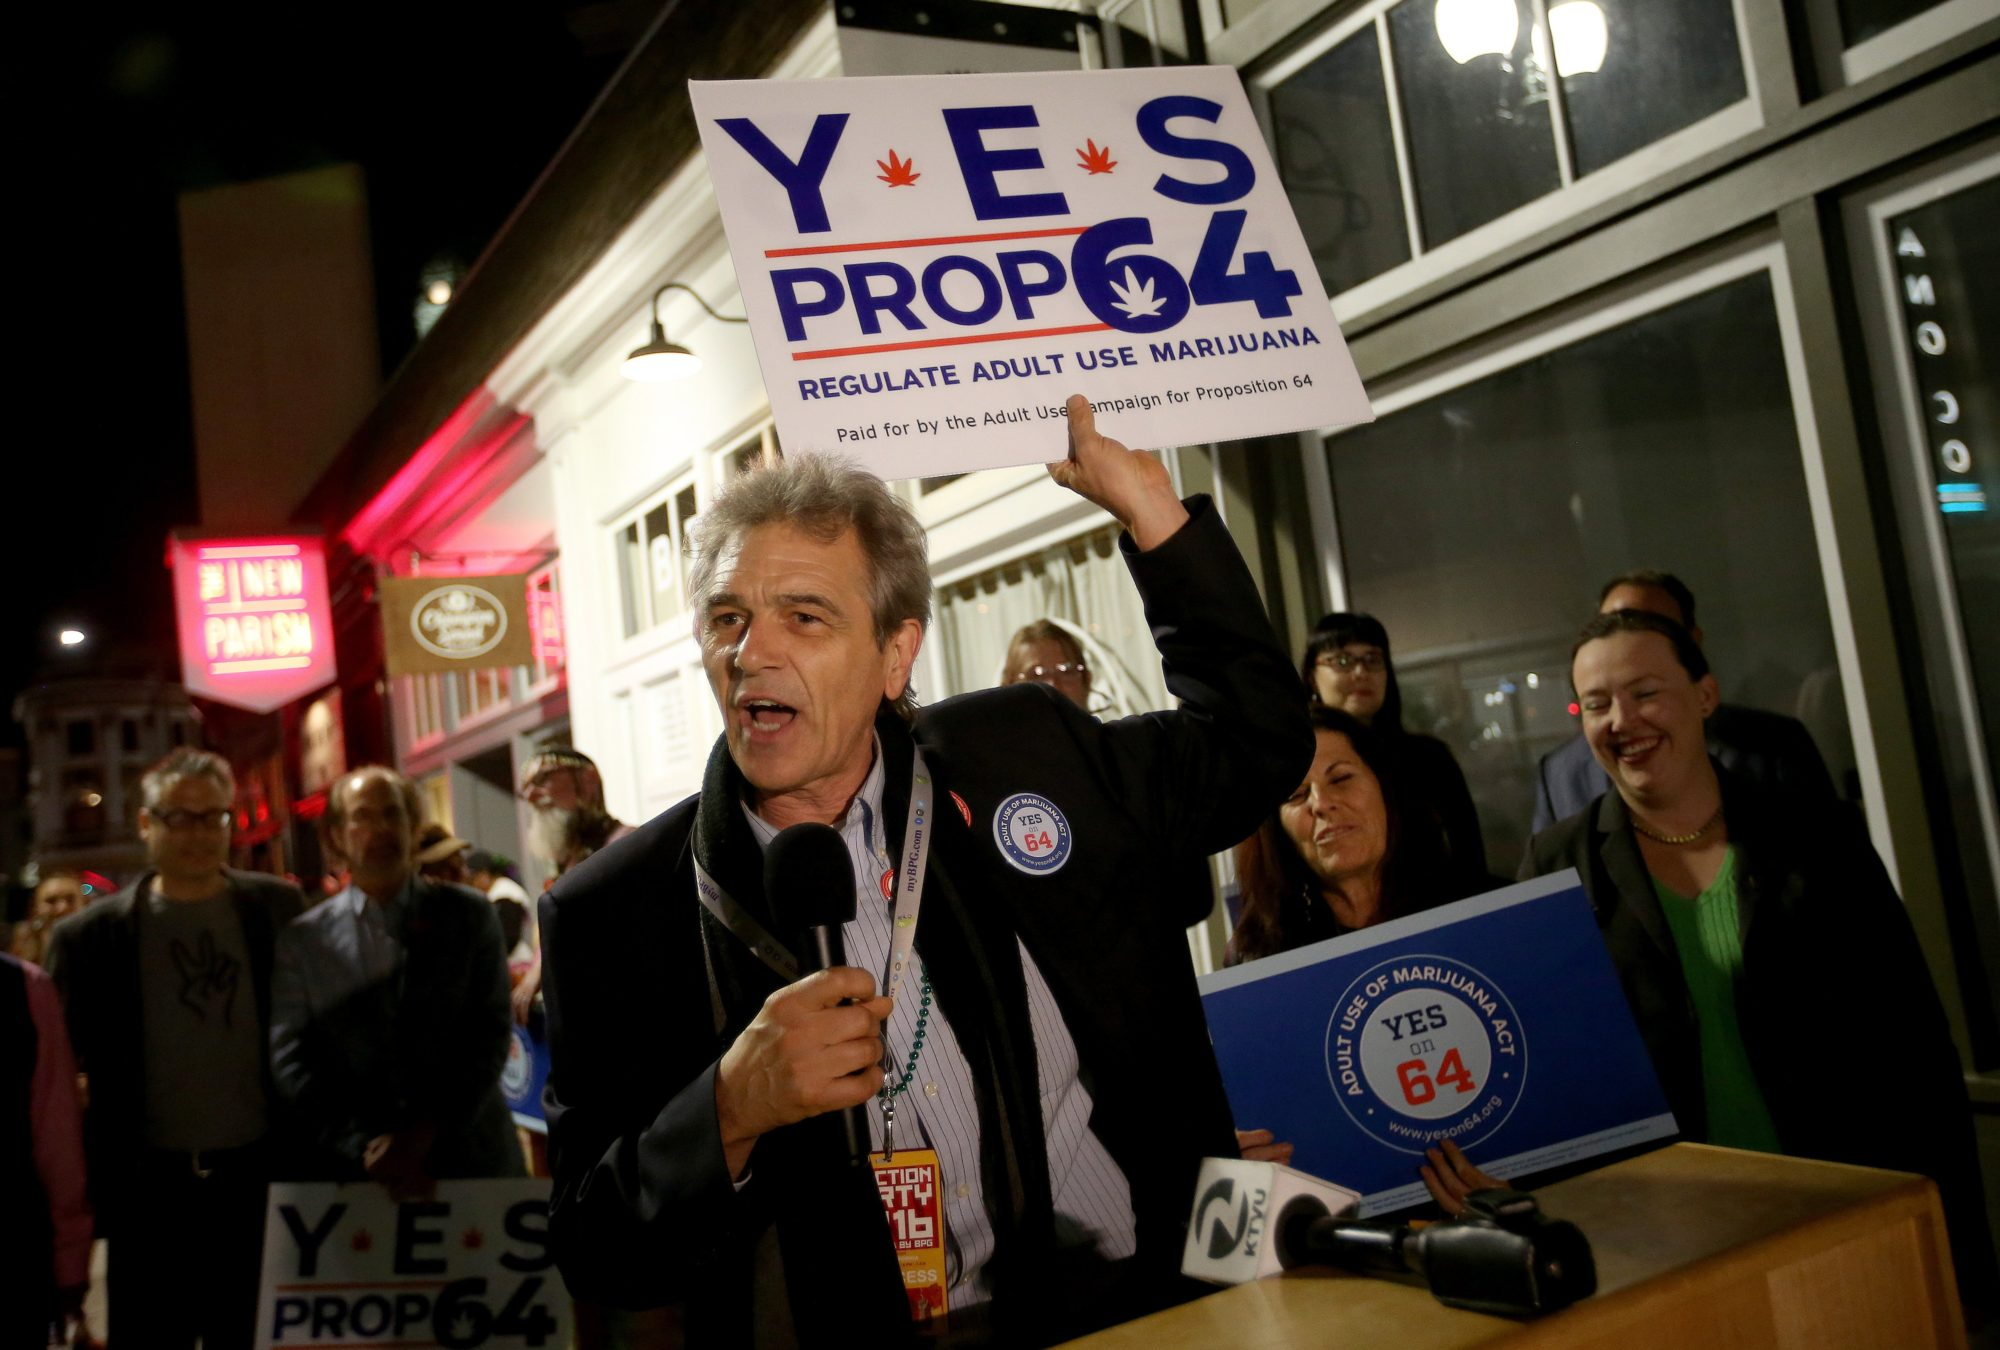 Chris Conrad, with Friends of Prop 64, speaks as people celebrate during a Proposition 64 election night party at the New Parish nightclub in Oakland, Calif., on Tuesday, Nov. 8, 2016. The proposition legalized the recreational use of marijuana in the state. (Jane Tyska/Bay Area News Group)